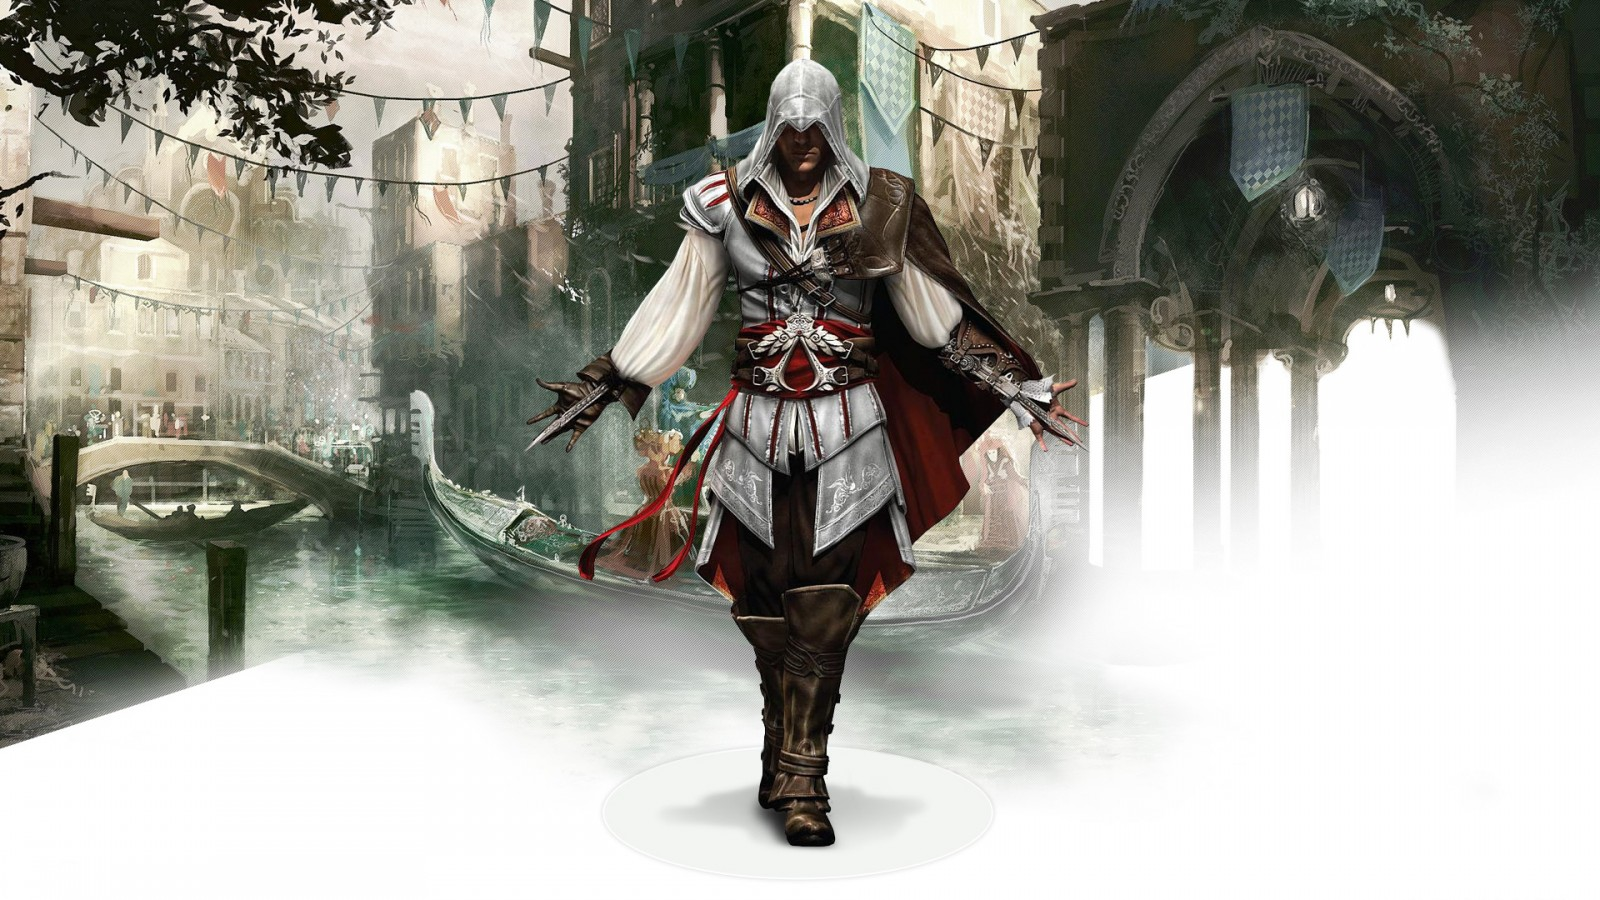 Beach Iphone Wallpaper Hd Ezio Auditore Da Firenze In Assassin S Creed 2 Wallpapers